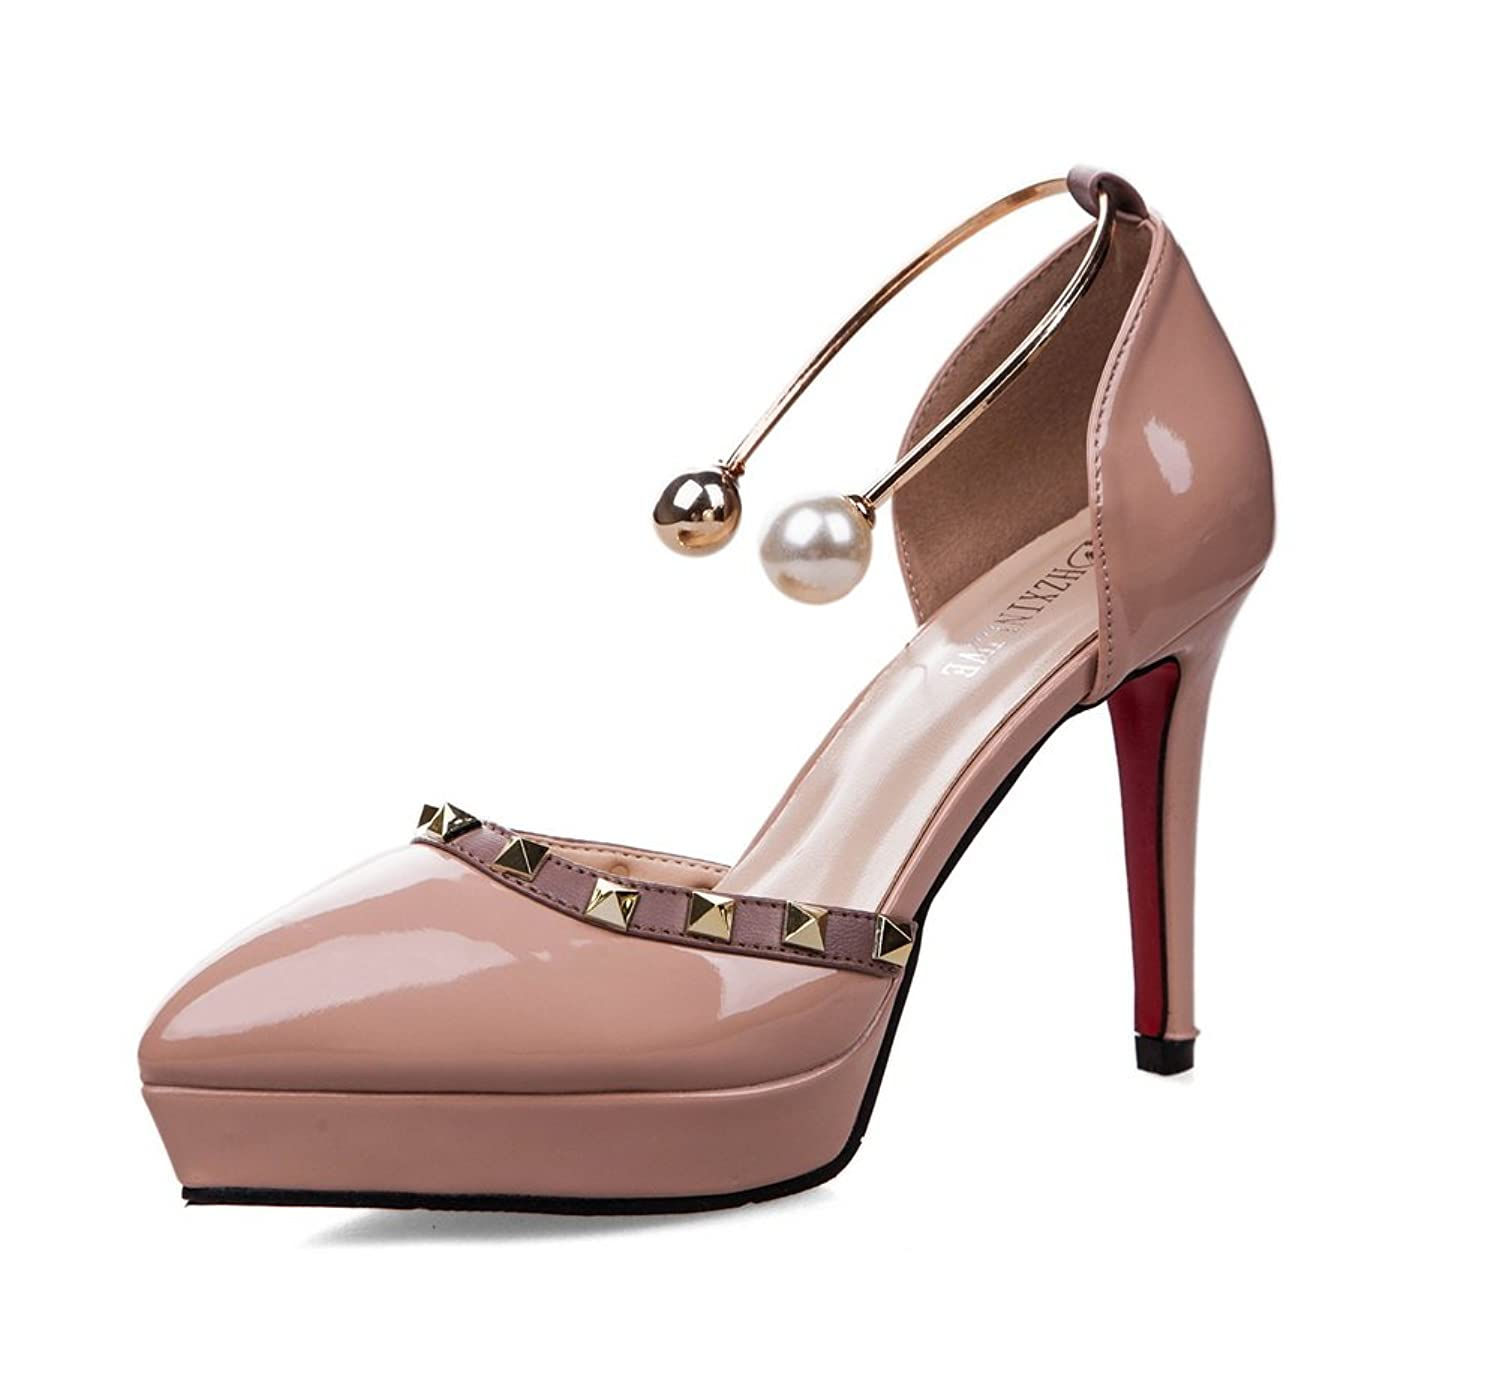 AdeeSu Womens Grommets Platform Low-Cut Uppers Patent-Leather Pumps Shoes